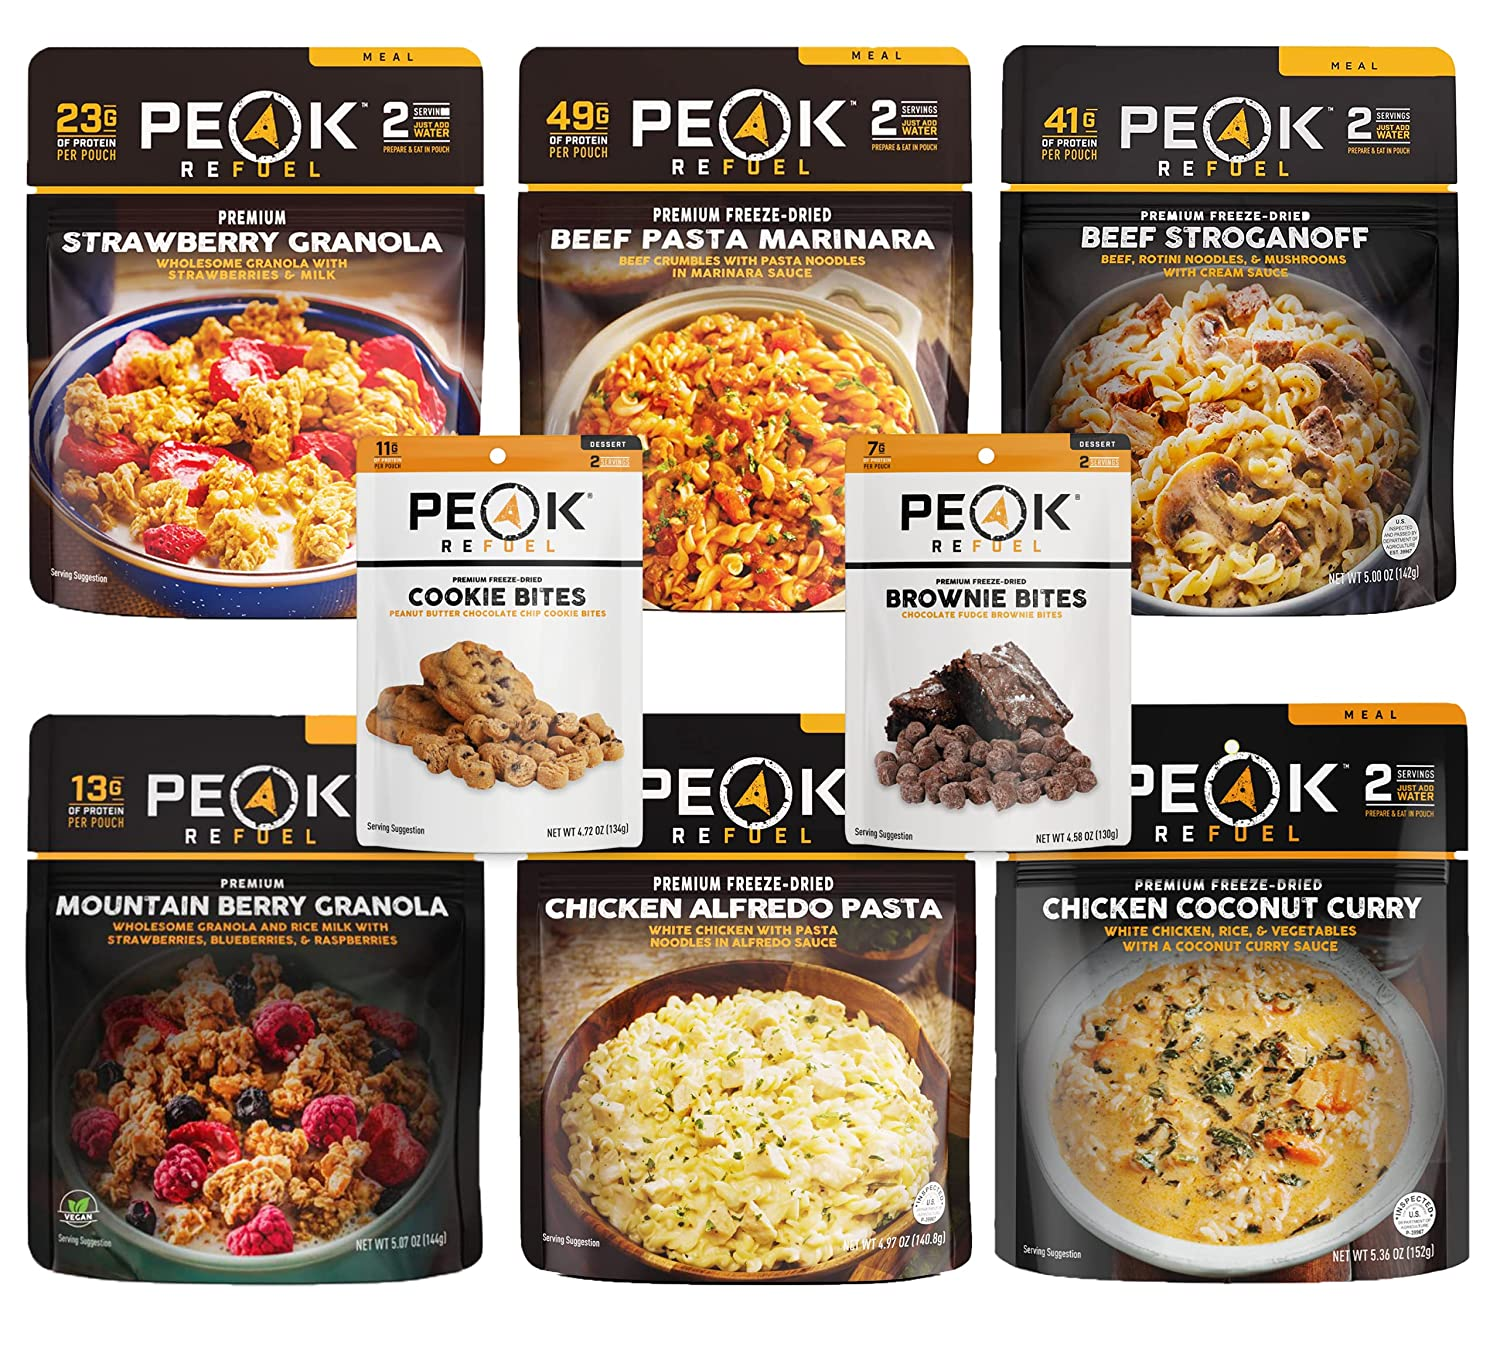 Peak Refuel Mountain Pack   Freeze Dried Lightweight Backpacking and Camping Food   6 Amazing Meals, 2 Desserts   Variety Pack   High Protein   Quick Prep